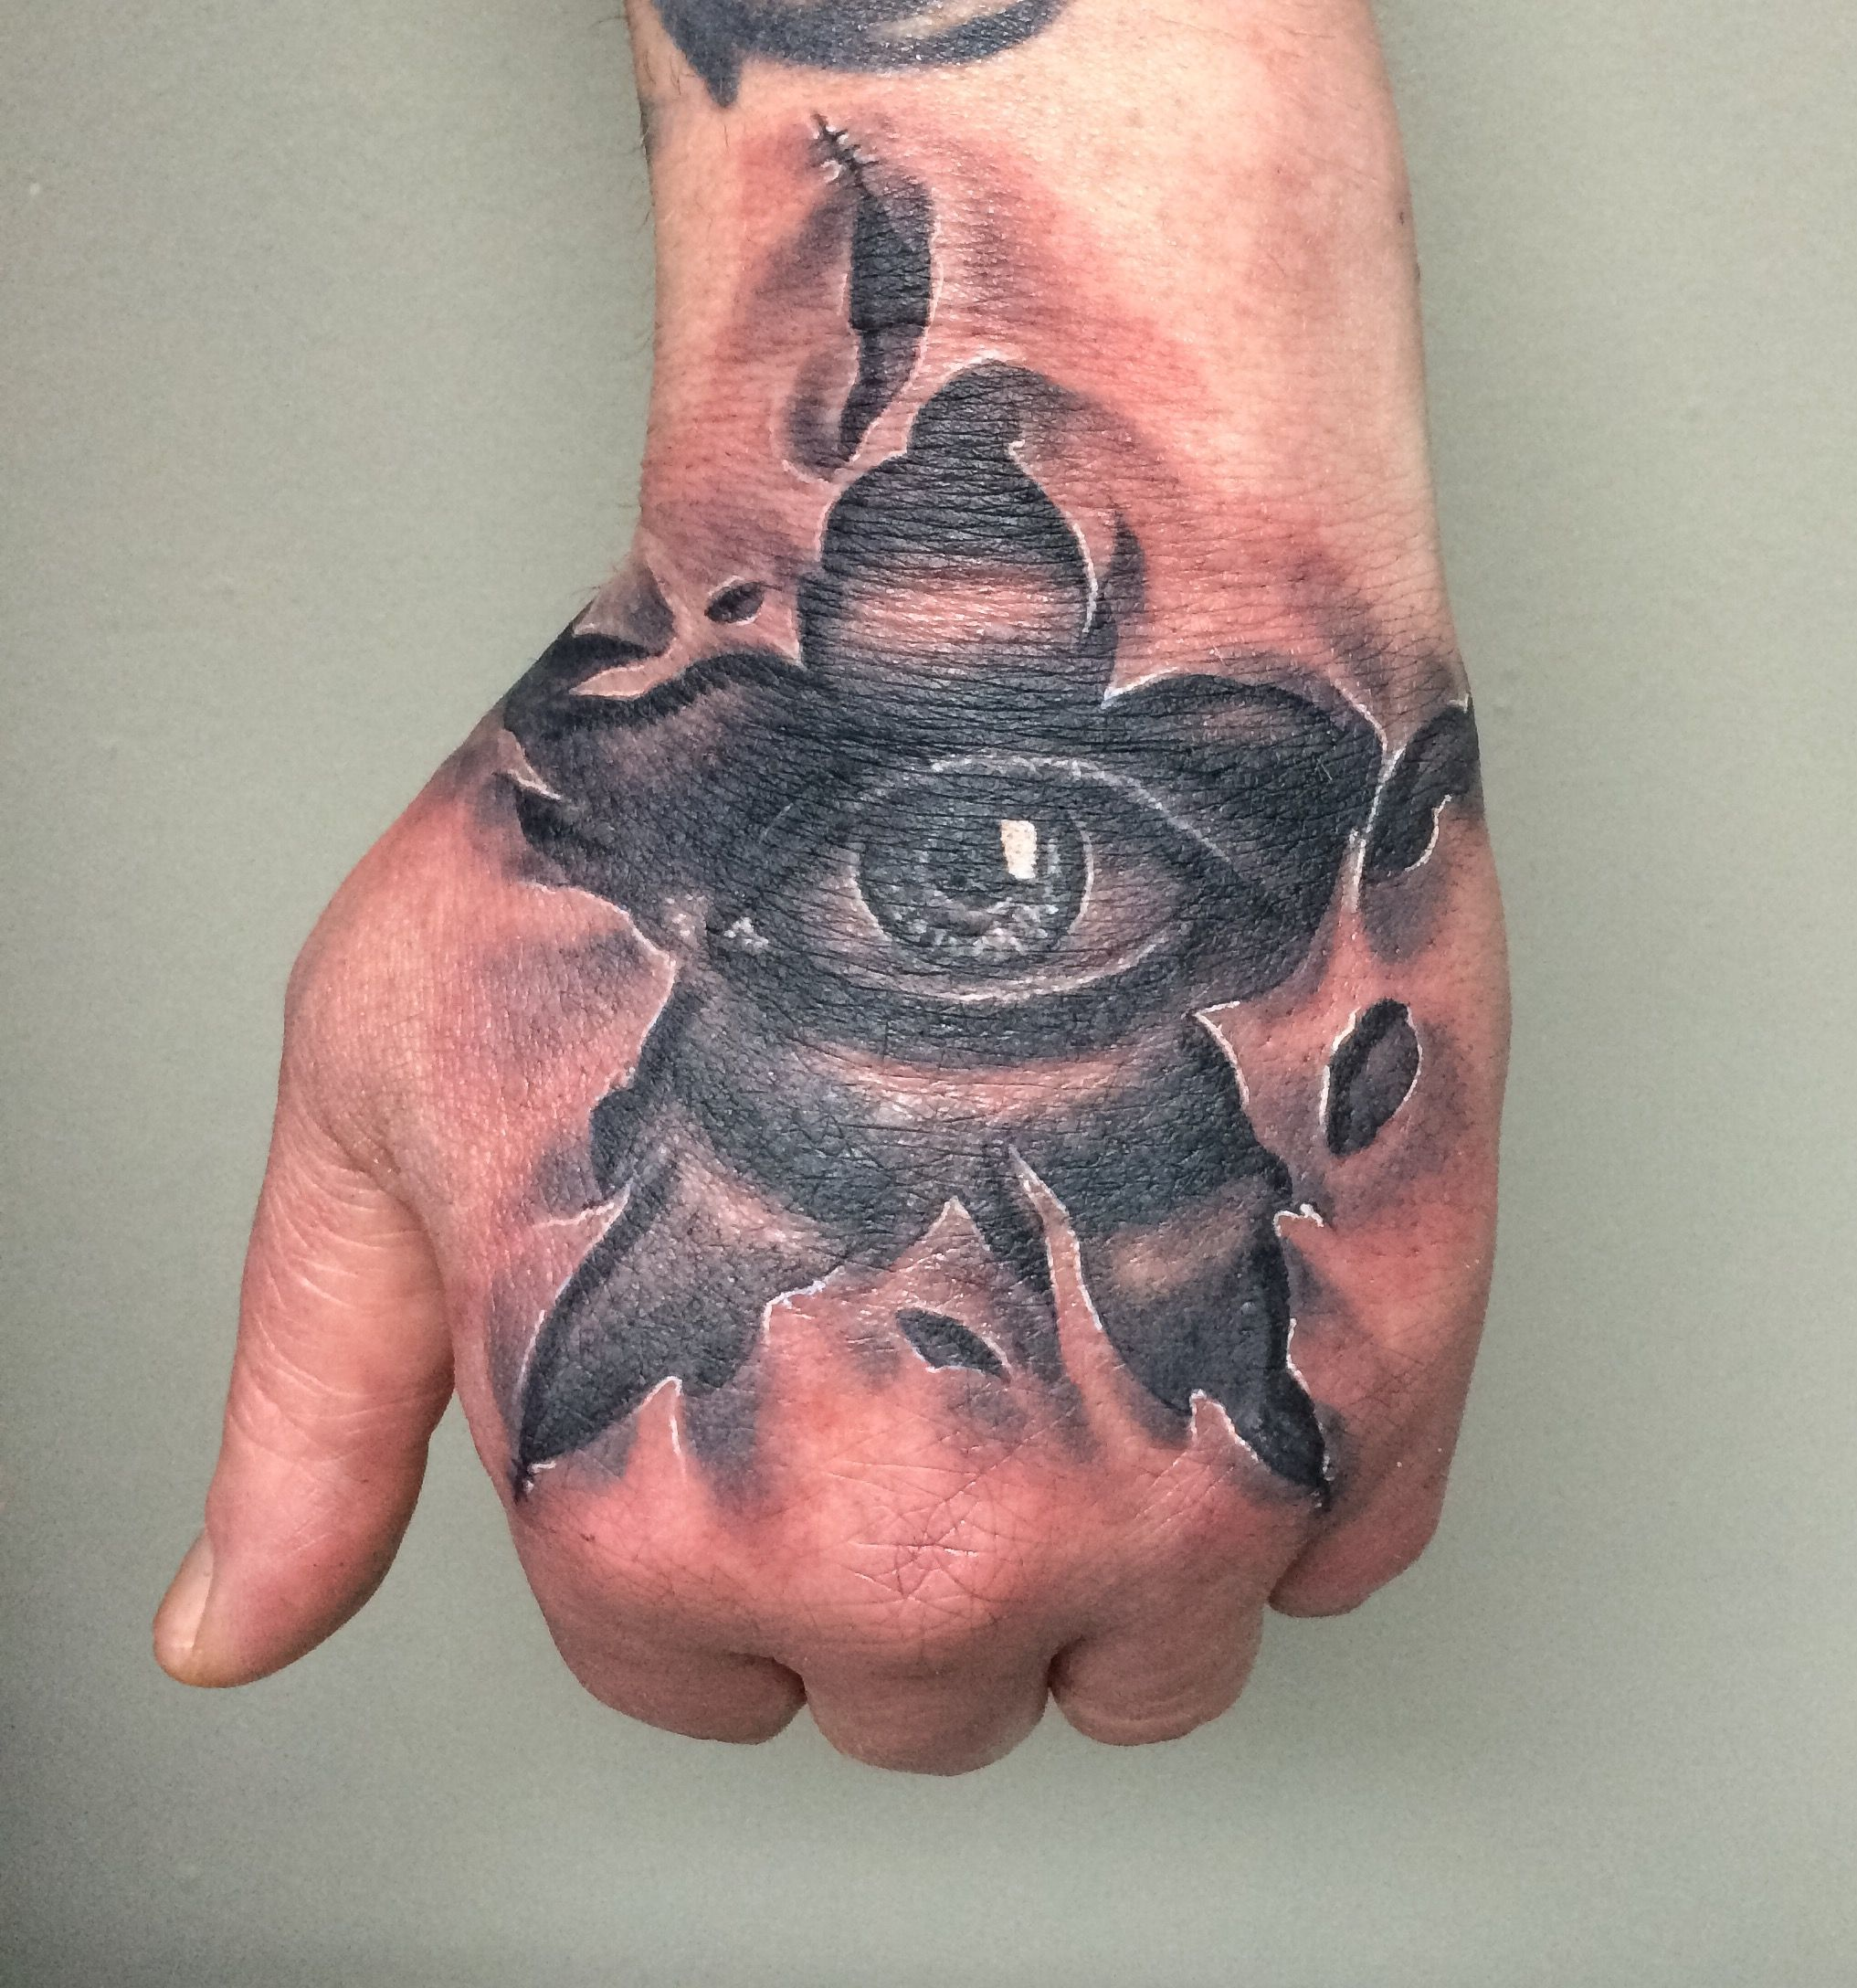 Hand Tattoo star and eye with ripped skin (With images